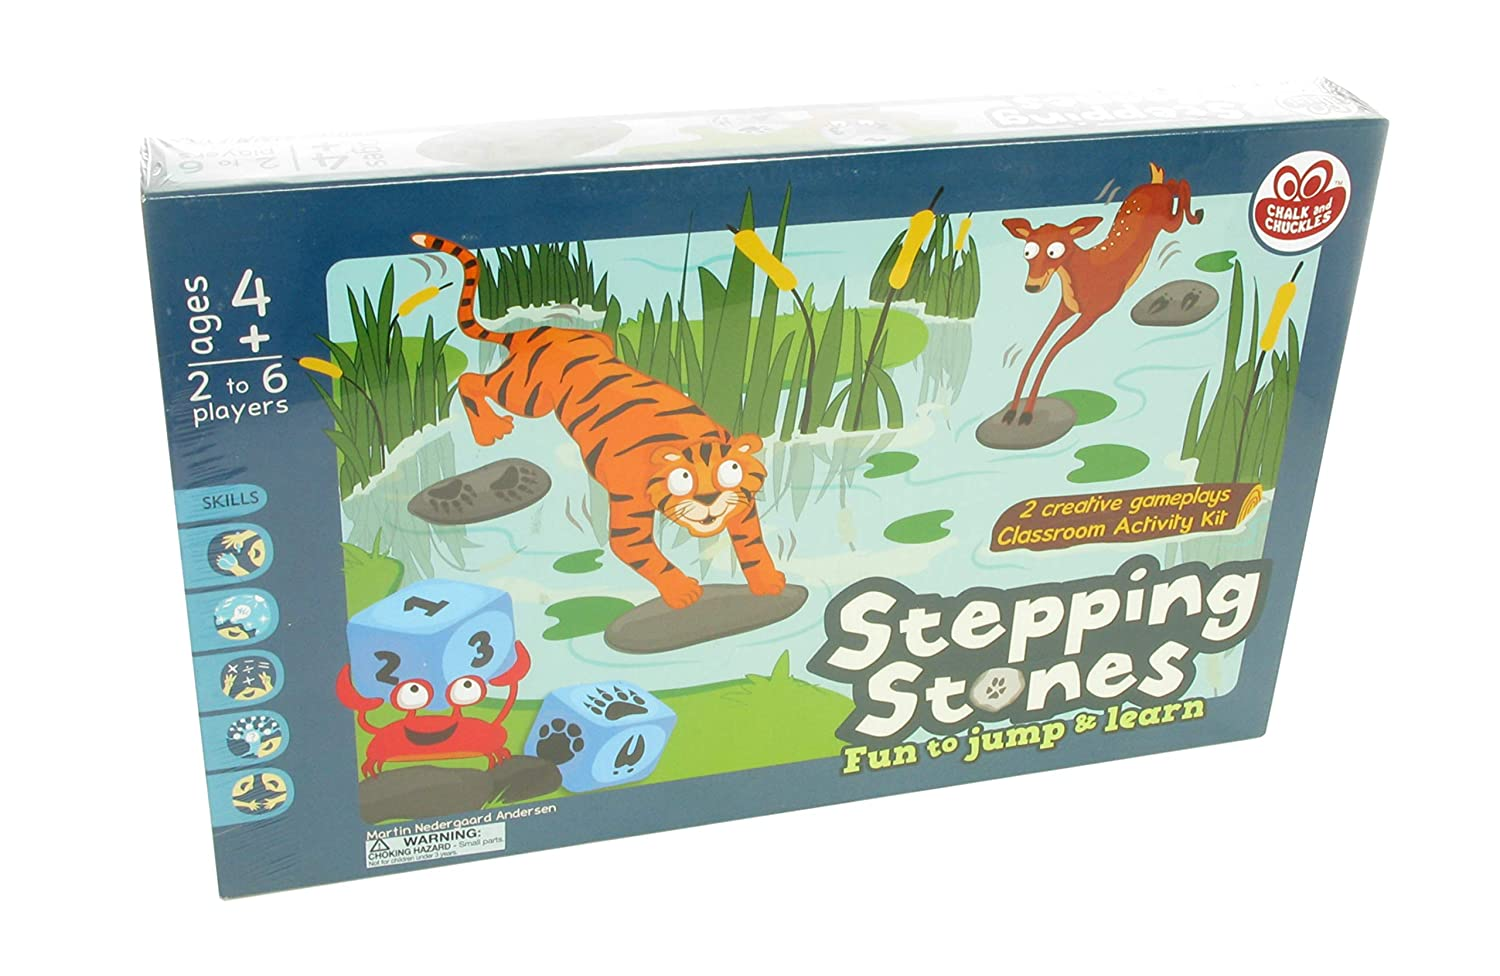 American Educational Products CC-037 Stepping Stones Activity Set 14.97 Length 1.75 Height 9.98 Wide 14.97 Length Chalk and Chuckles 1.75 Height 9.98 Wide